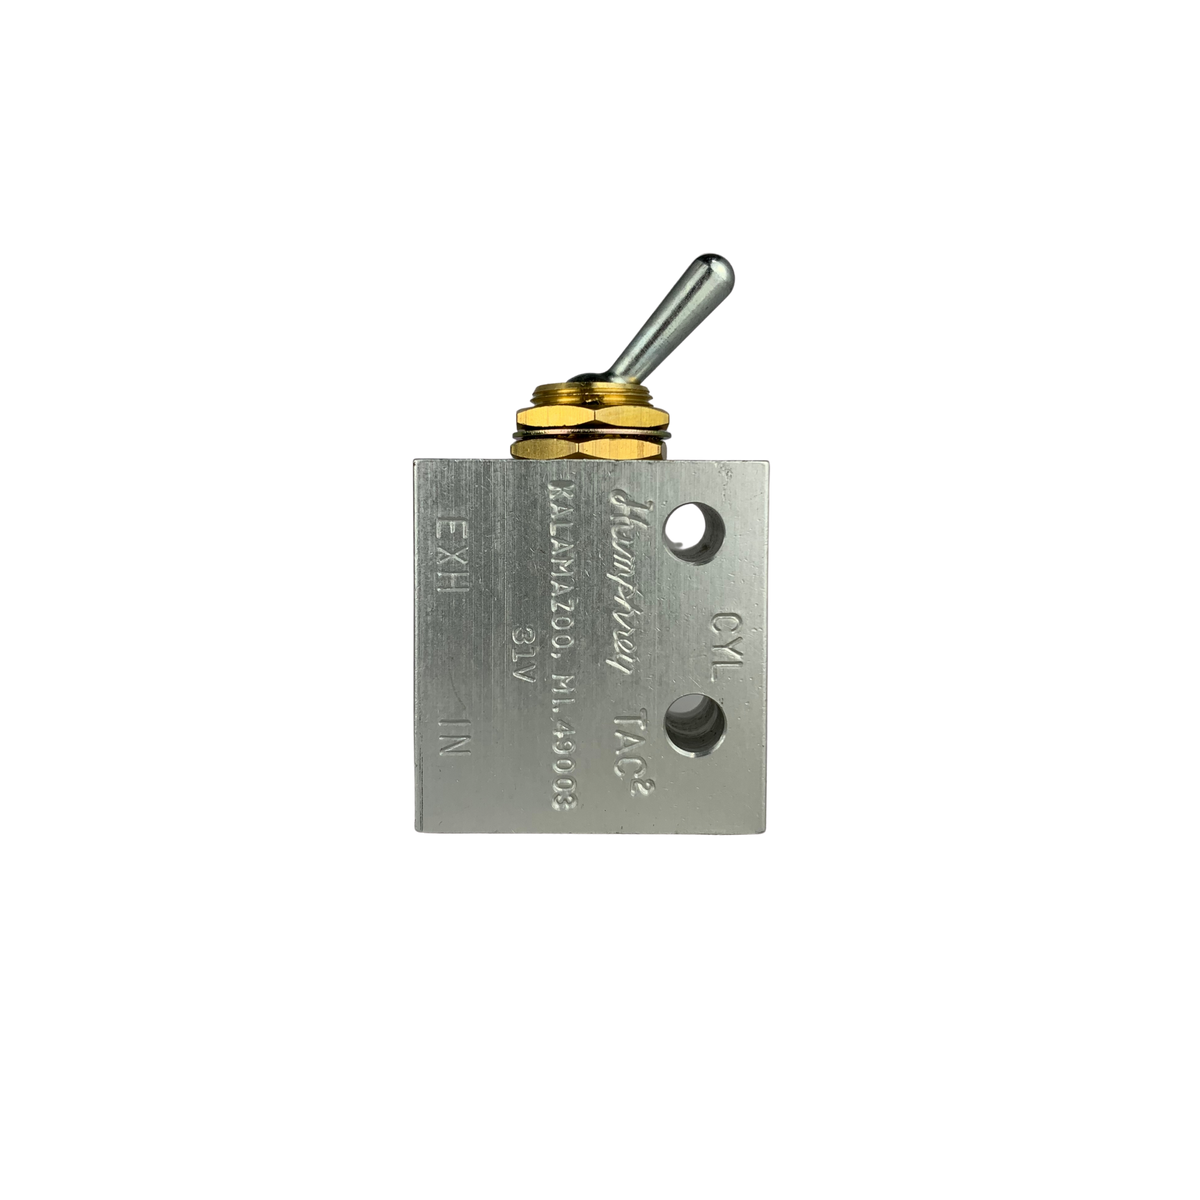 31V is a rectangular block with qa toggle switch. 1 threaded port on top face/ 2 threaded ports on bottom face